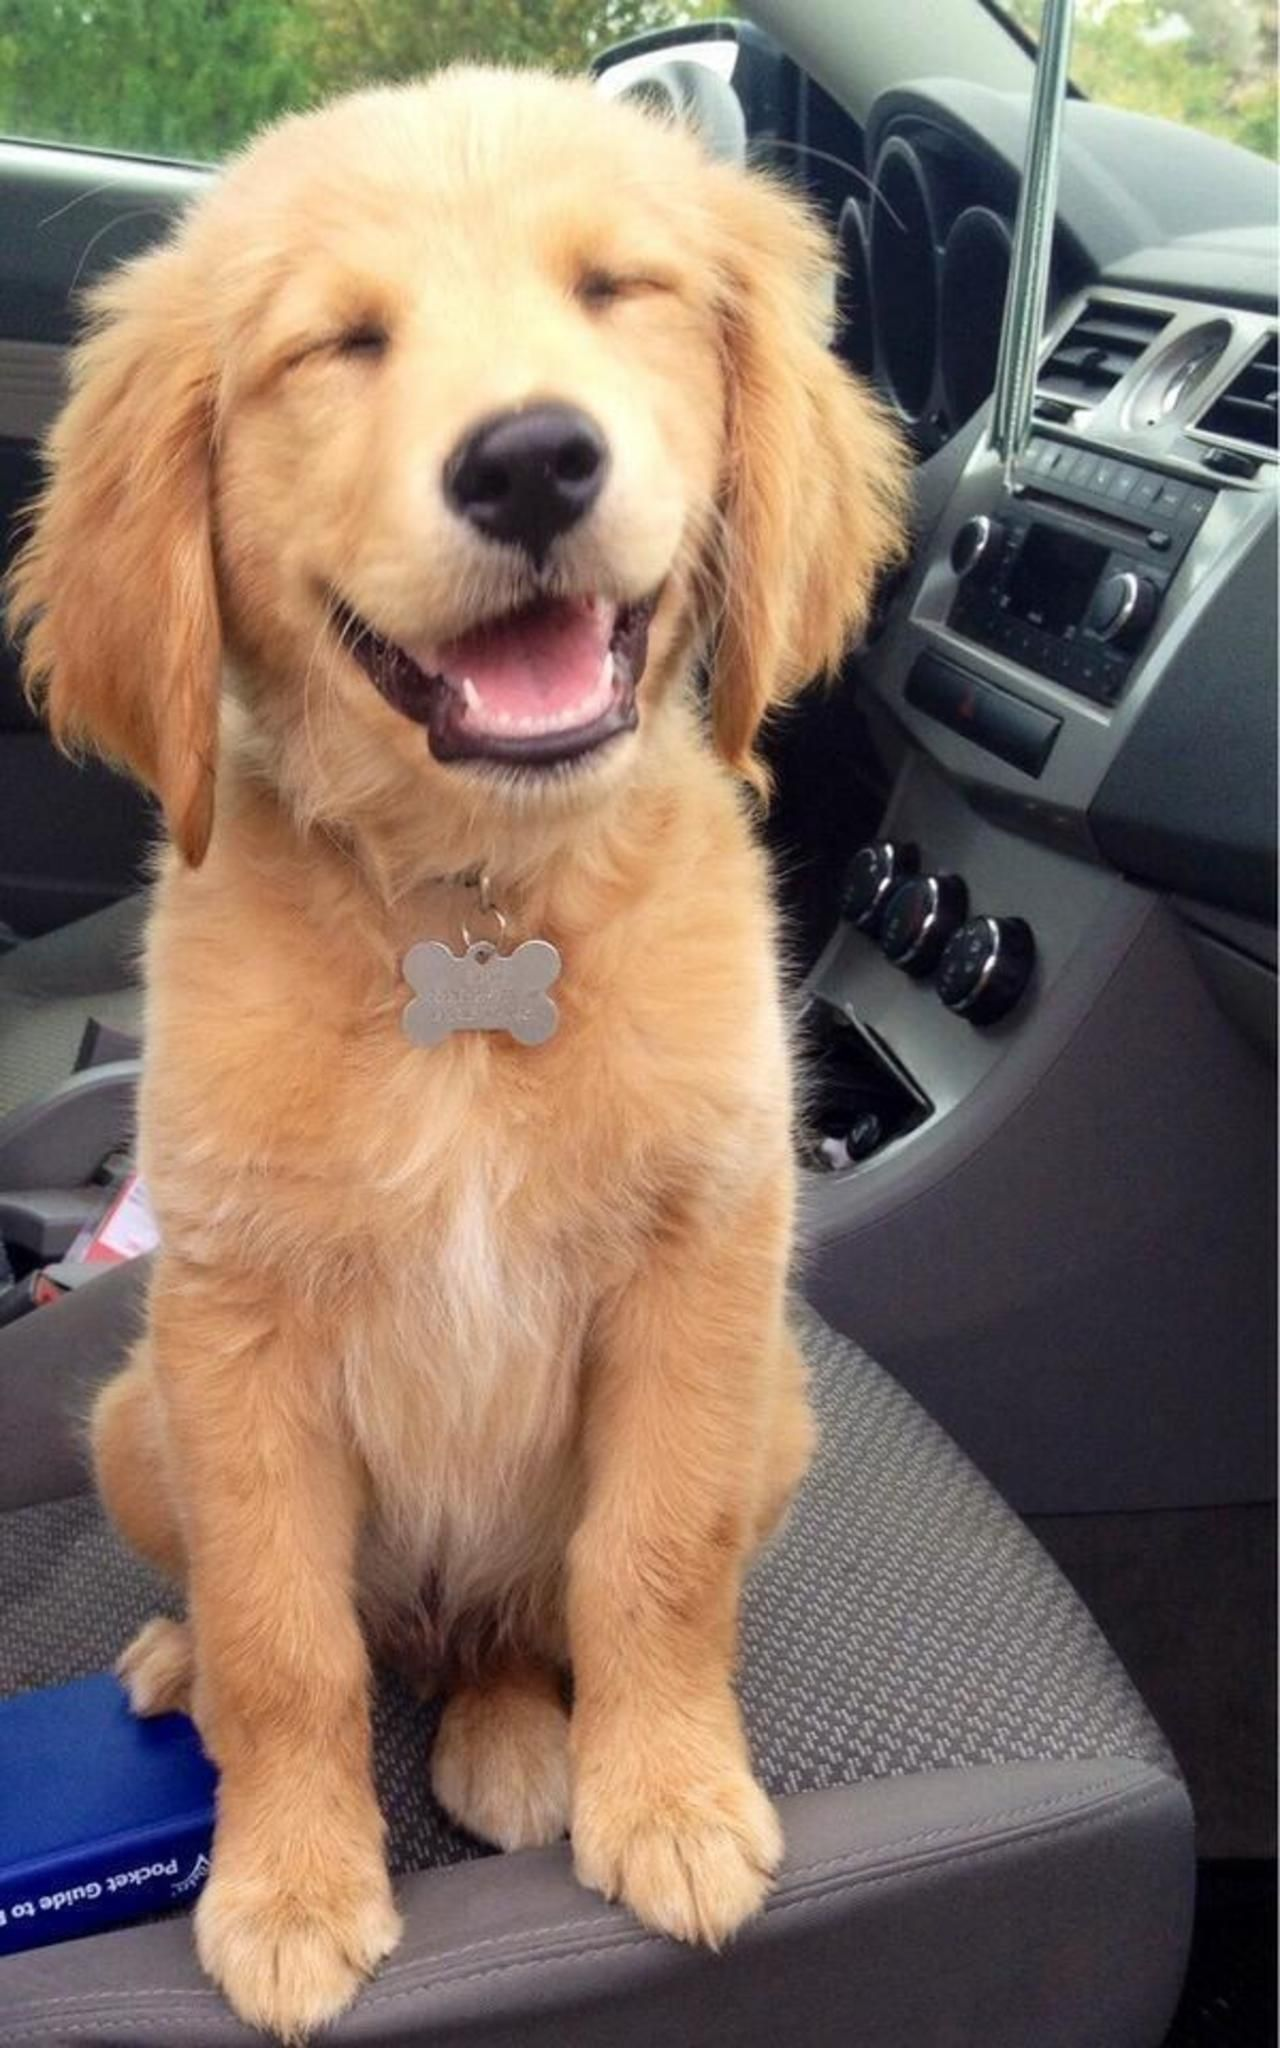 Here S A Really Happy Puppy To Light Up Your Day Cute Animals